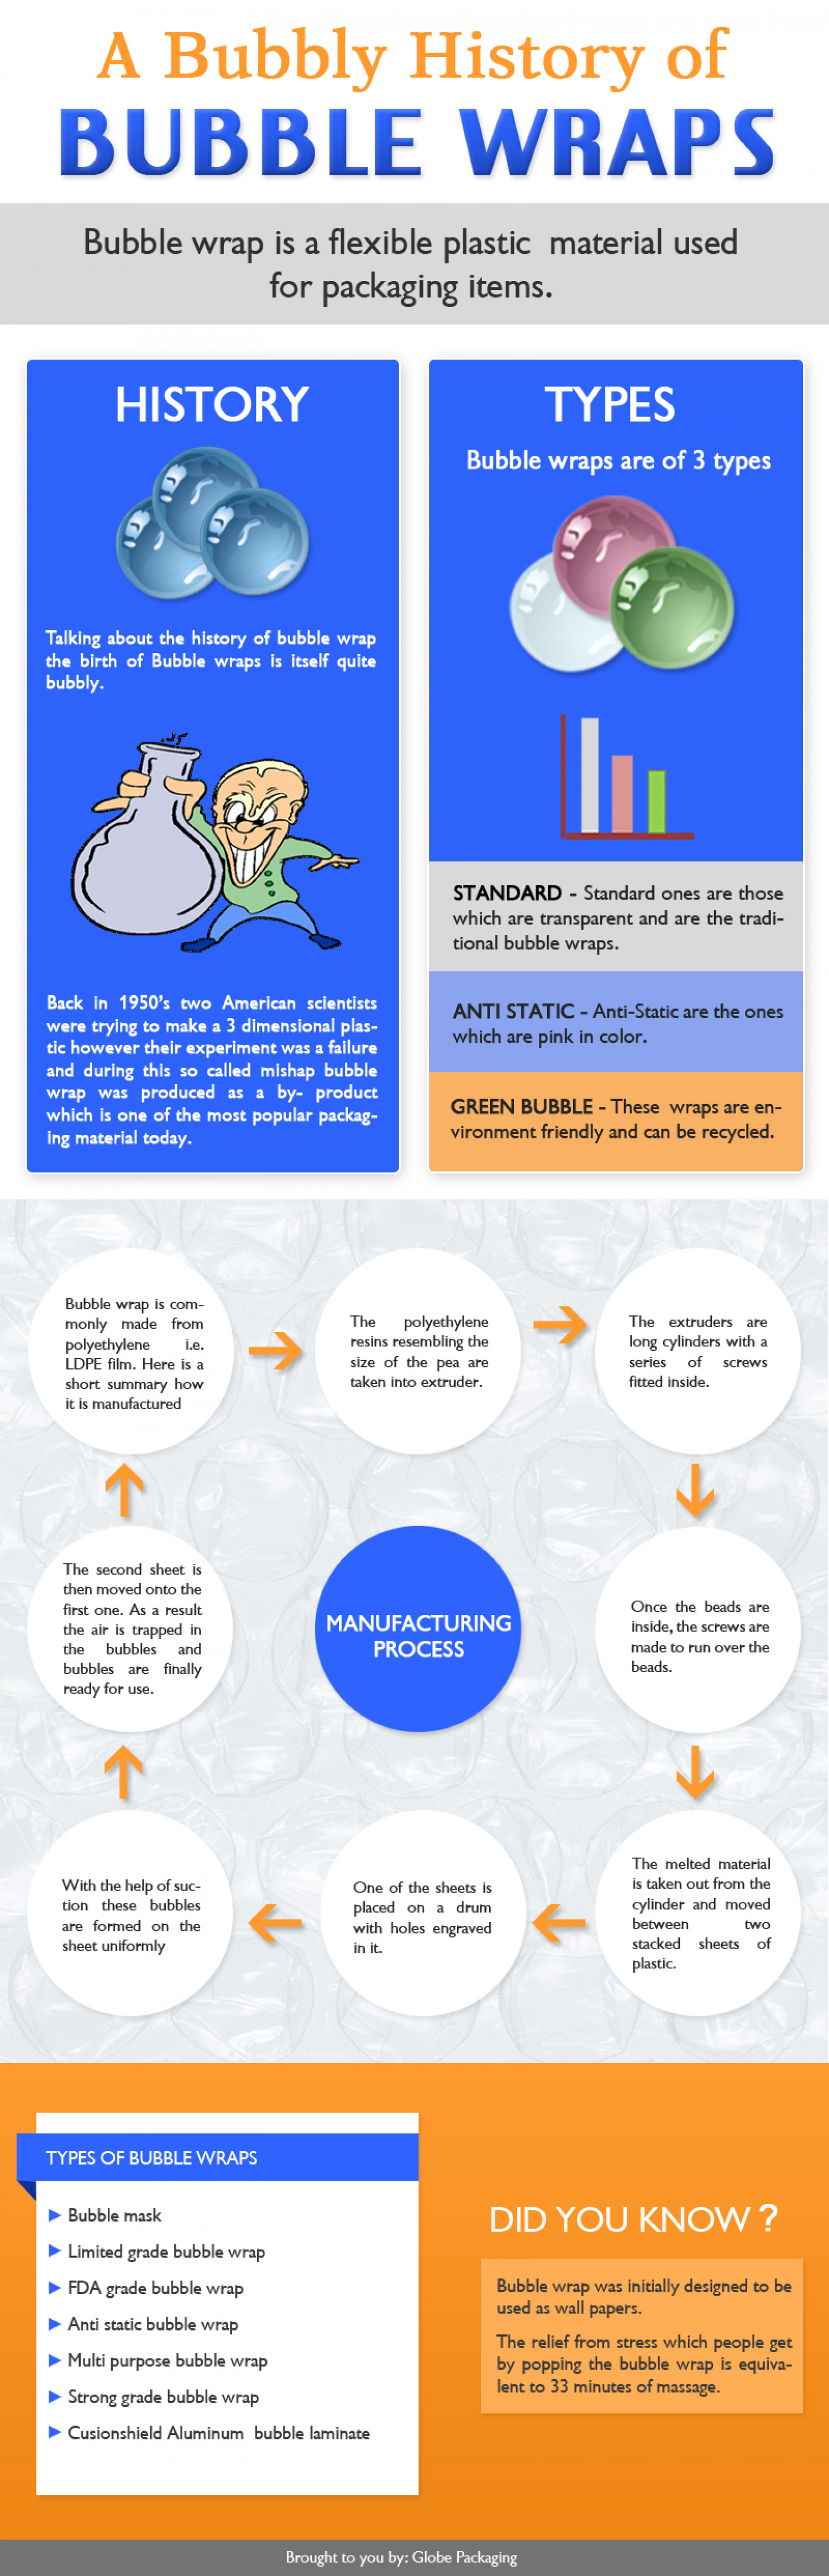 The Bubbly History of Bubble Wraps Infographic